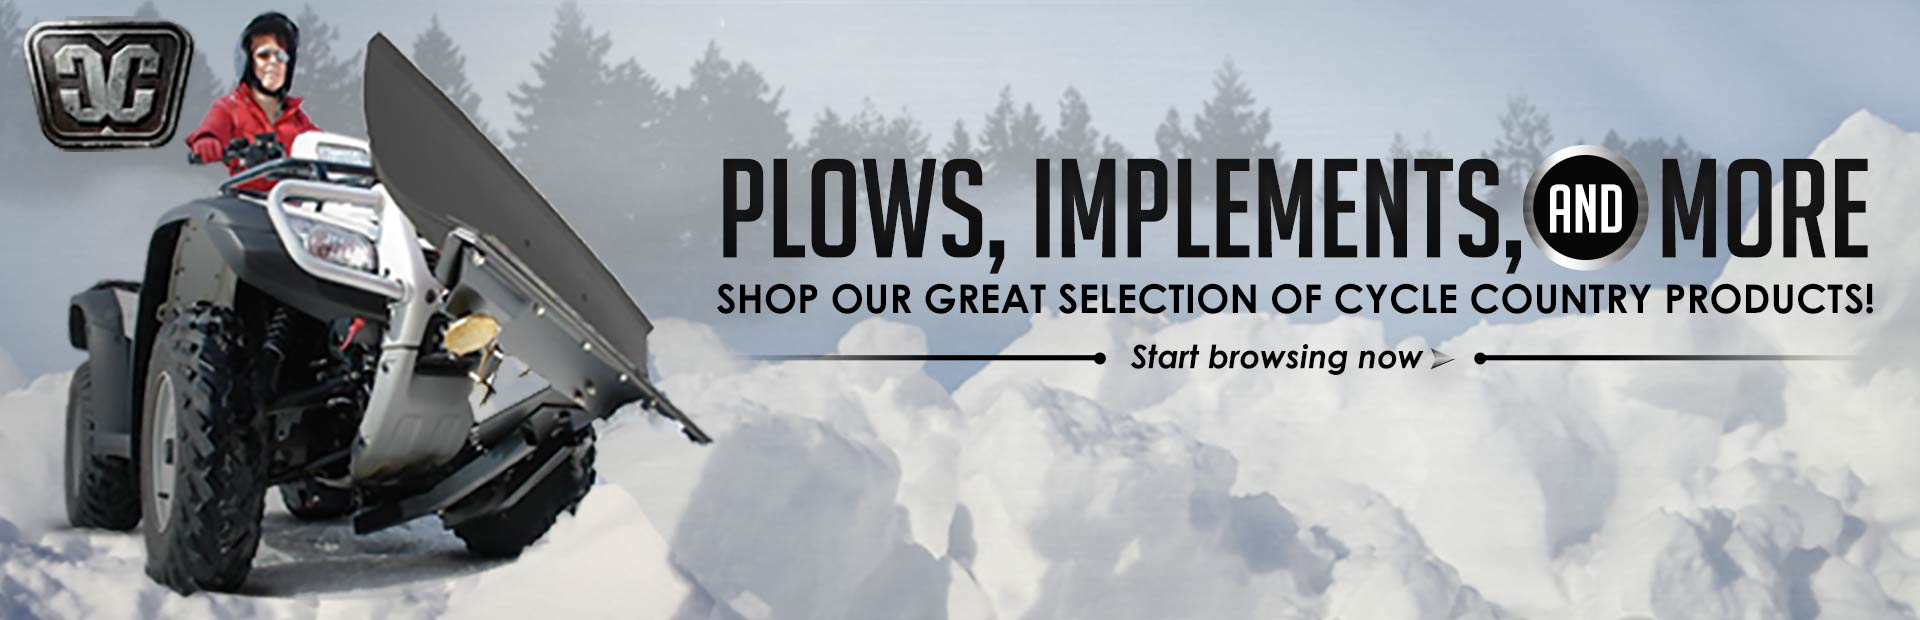 Shop our great selection of Cycle Country plows, implements, and more! Click here to start browsing.